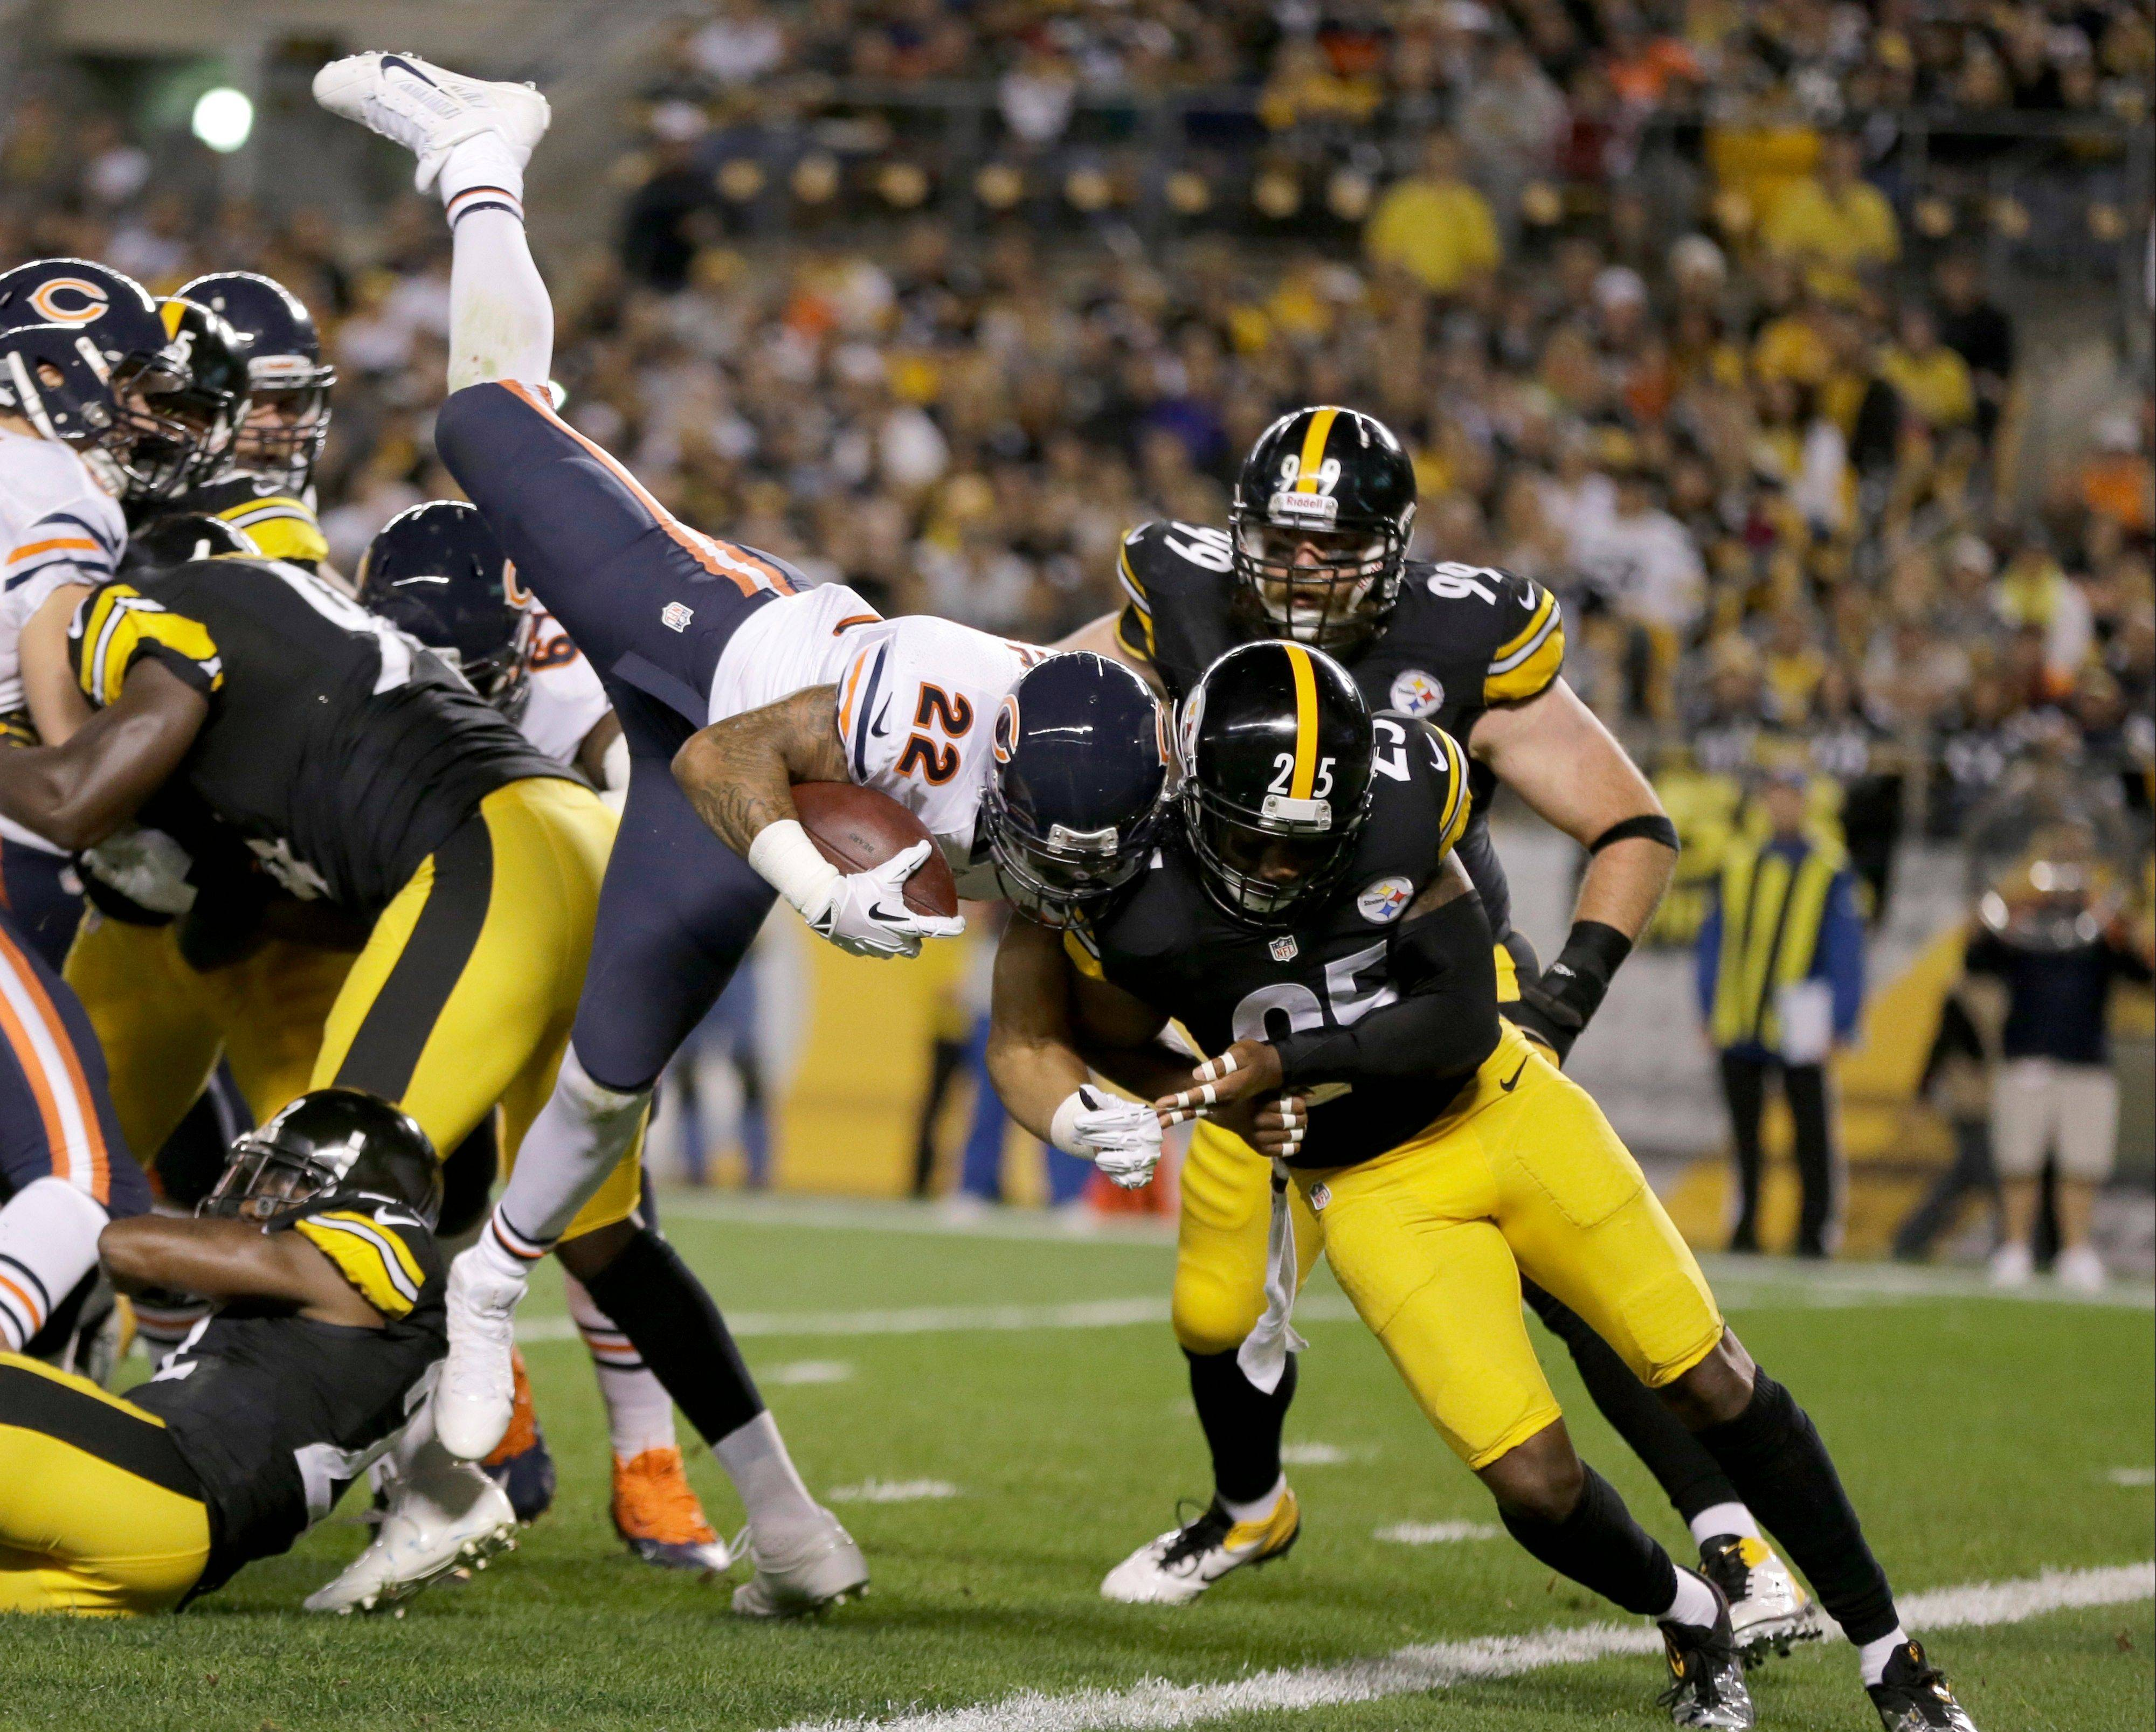 Bears running back Matt Forte soars up and over to score a touchdown in the first quarter Sunday night at Pittsburgh.